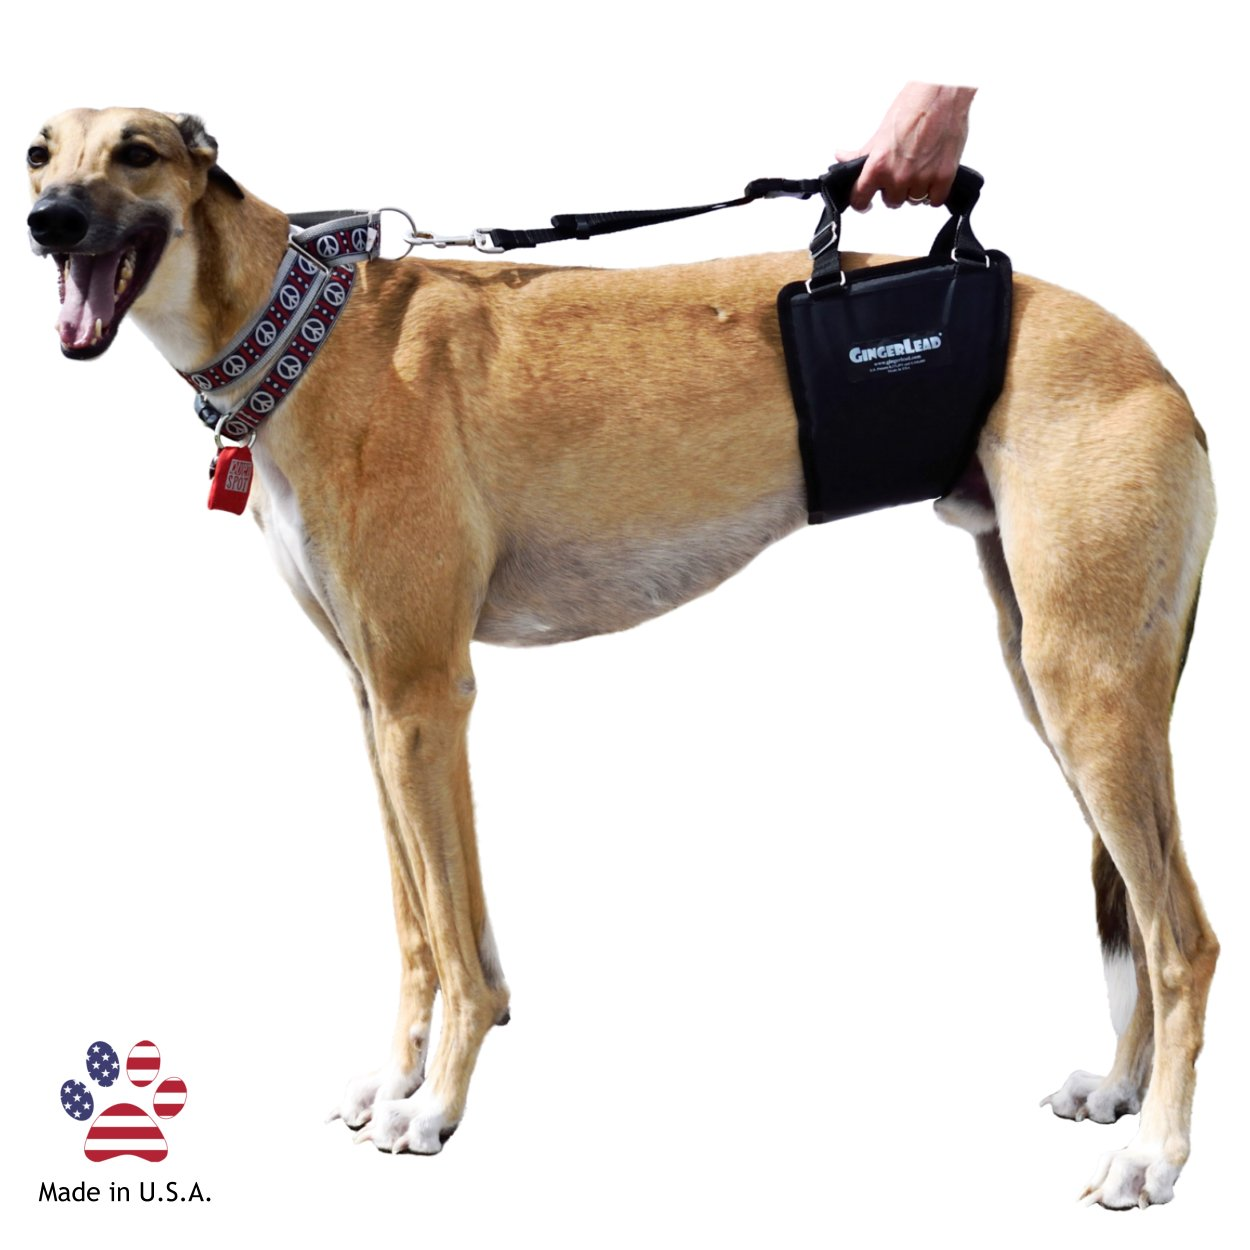 GingerLead Dog Support & Rehabilitation Harness with Stay on Straps - Tall  Male Sling - Ideal for aging, disabled, or injured dogs needing assistance